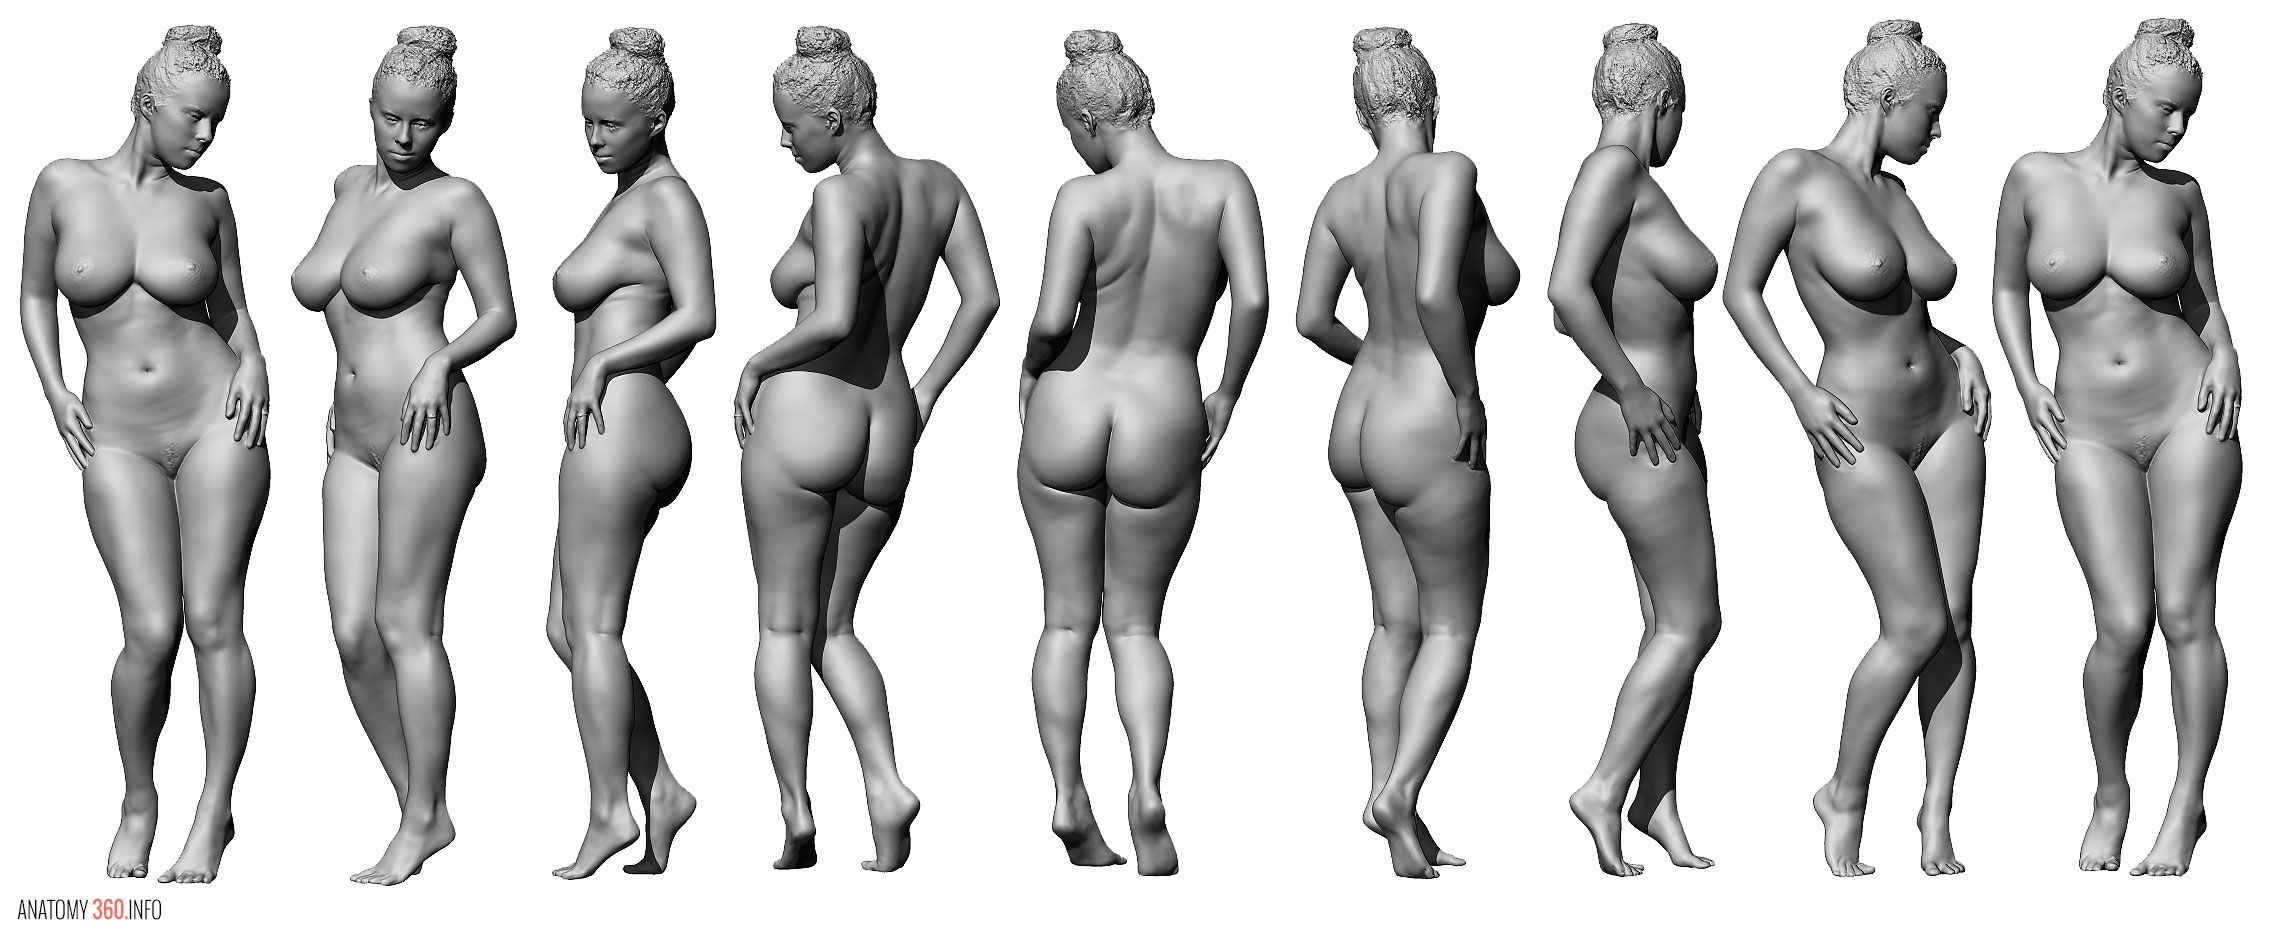 61.jpg 2 295×935 pixels | Human Anatomy and Poses | Pinterest